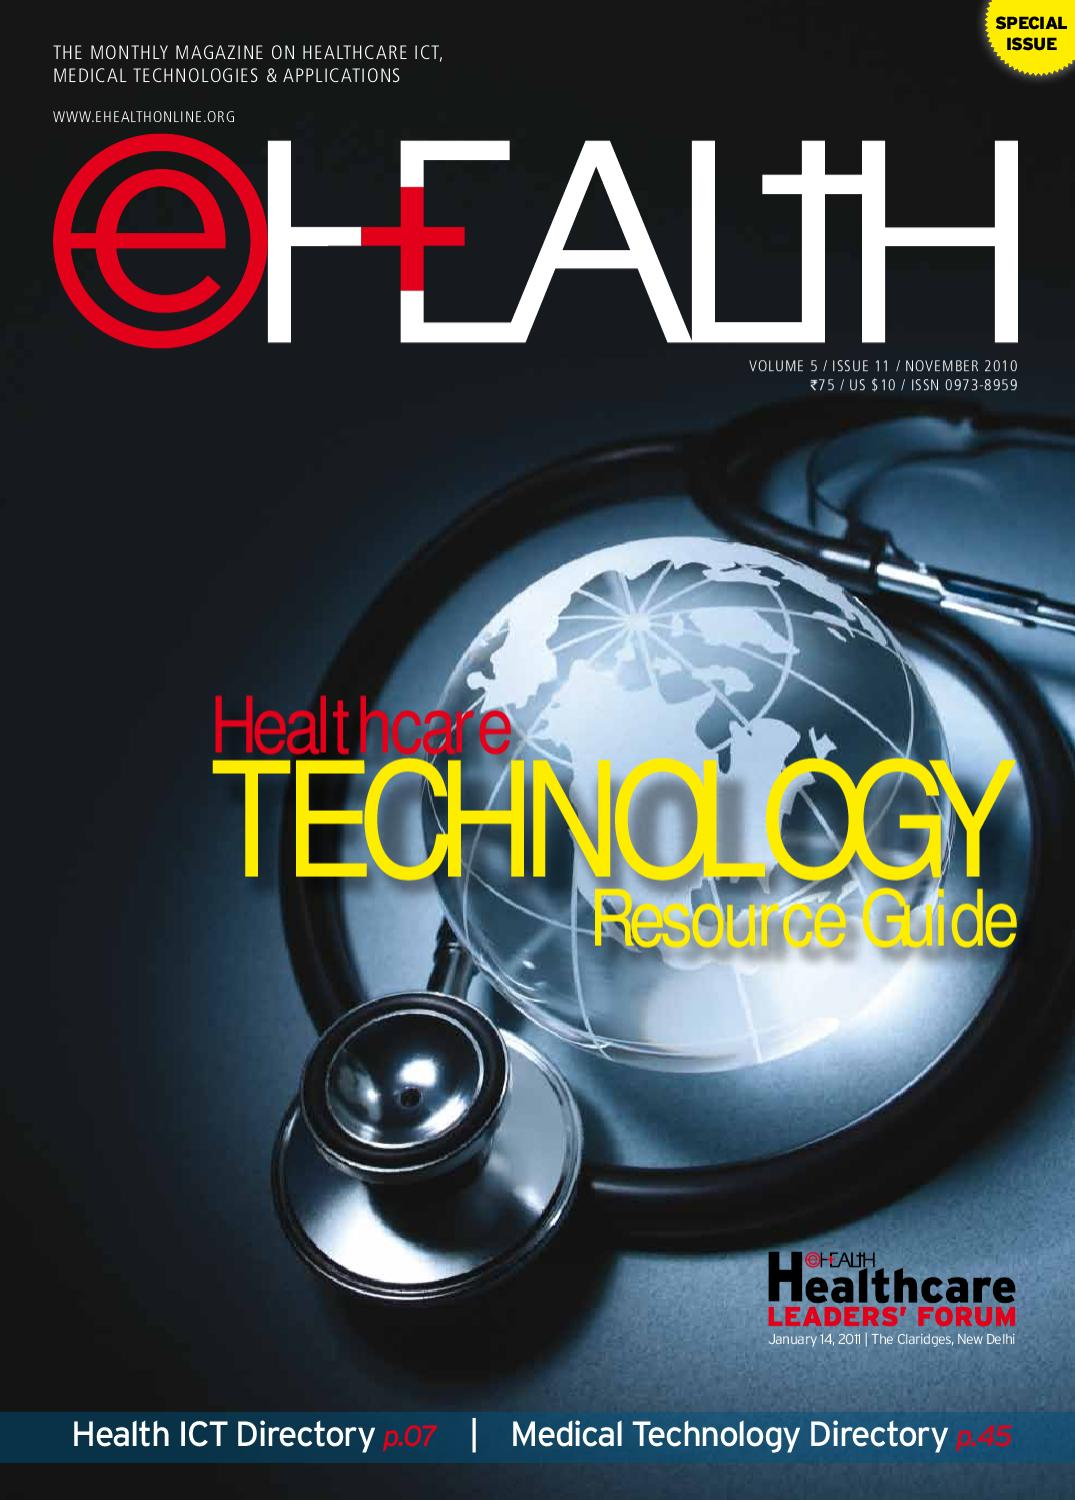 Healthcare TECHNOLOGY Resource Guide : November 2010 by